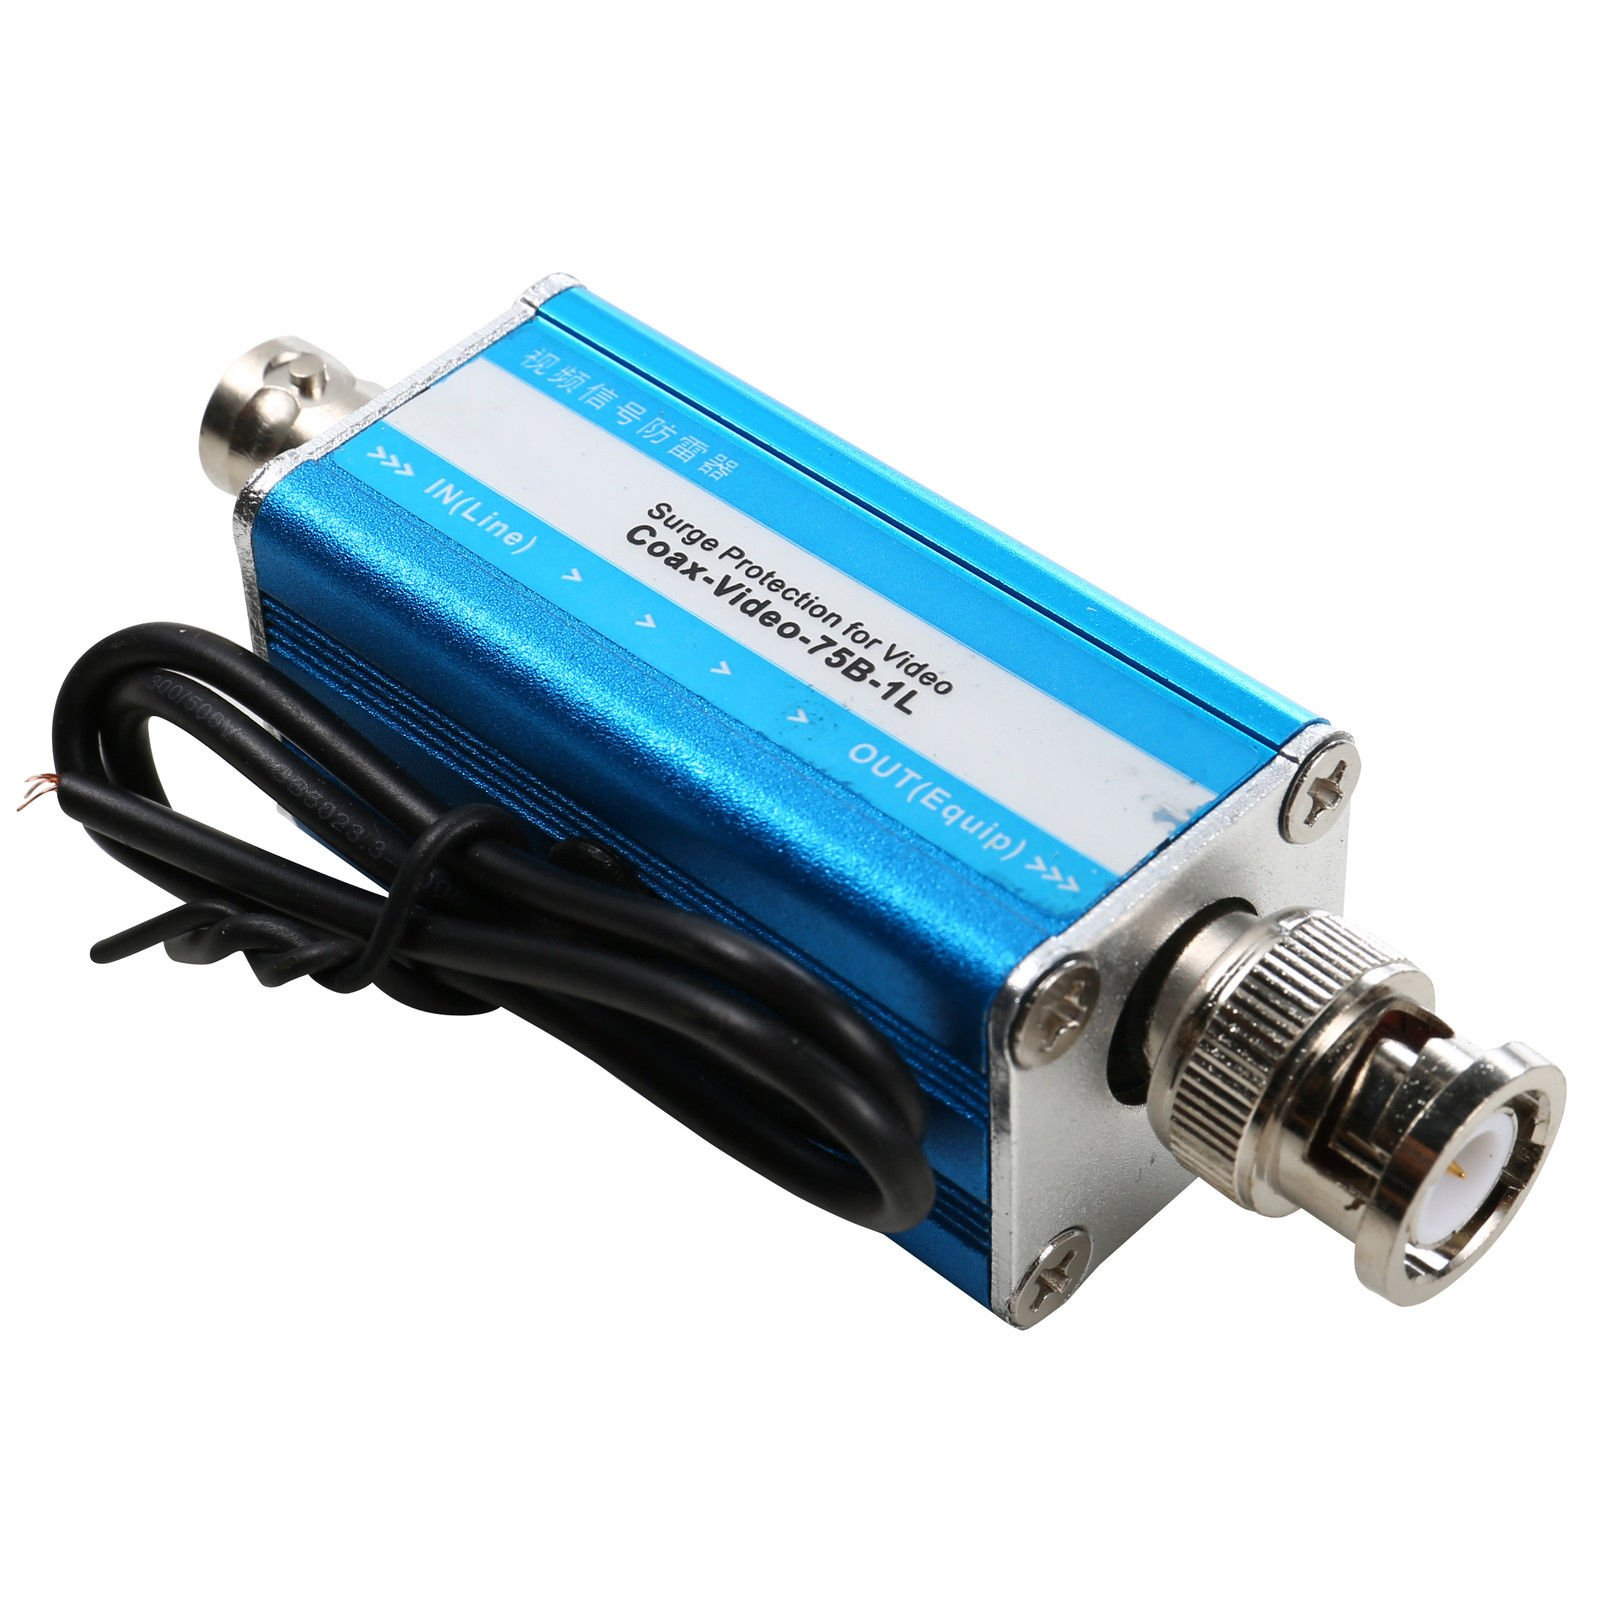 Cheap Voltage Protection Find Deals On Line At Lm317 Overvoltage Get Quotations Uhppote Bnc Cctv Video Surge Protector F Connector To From High